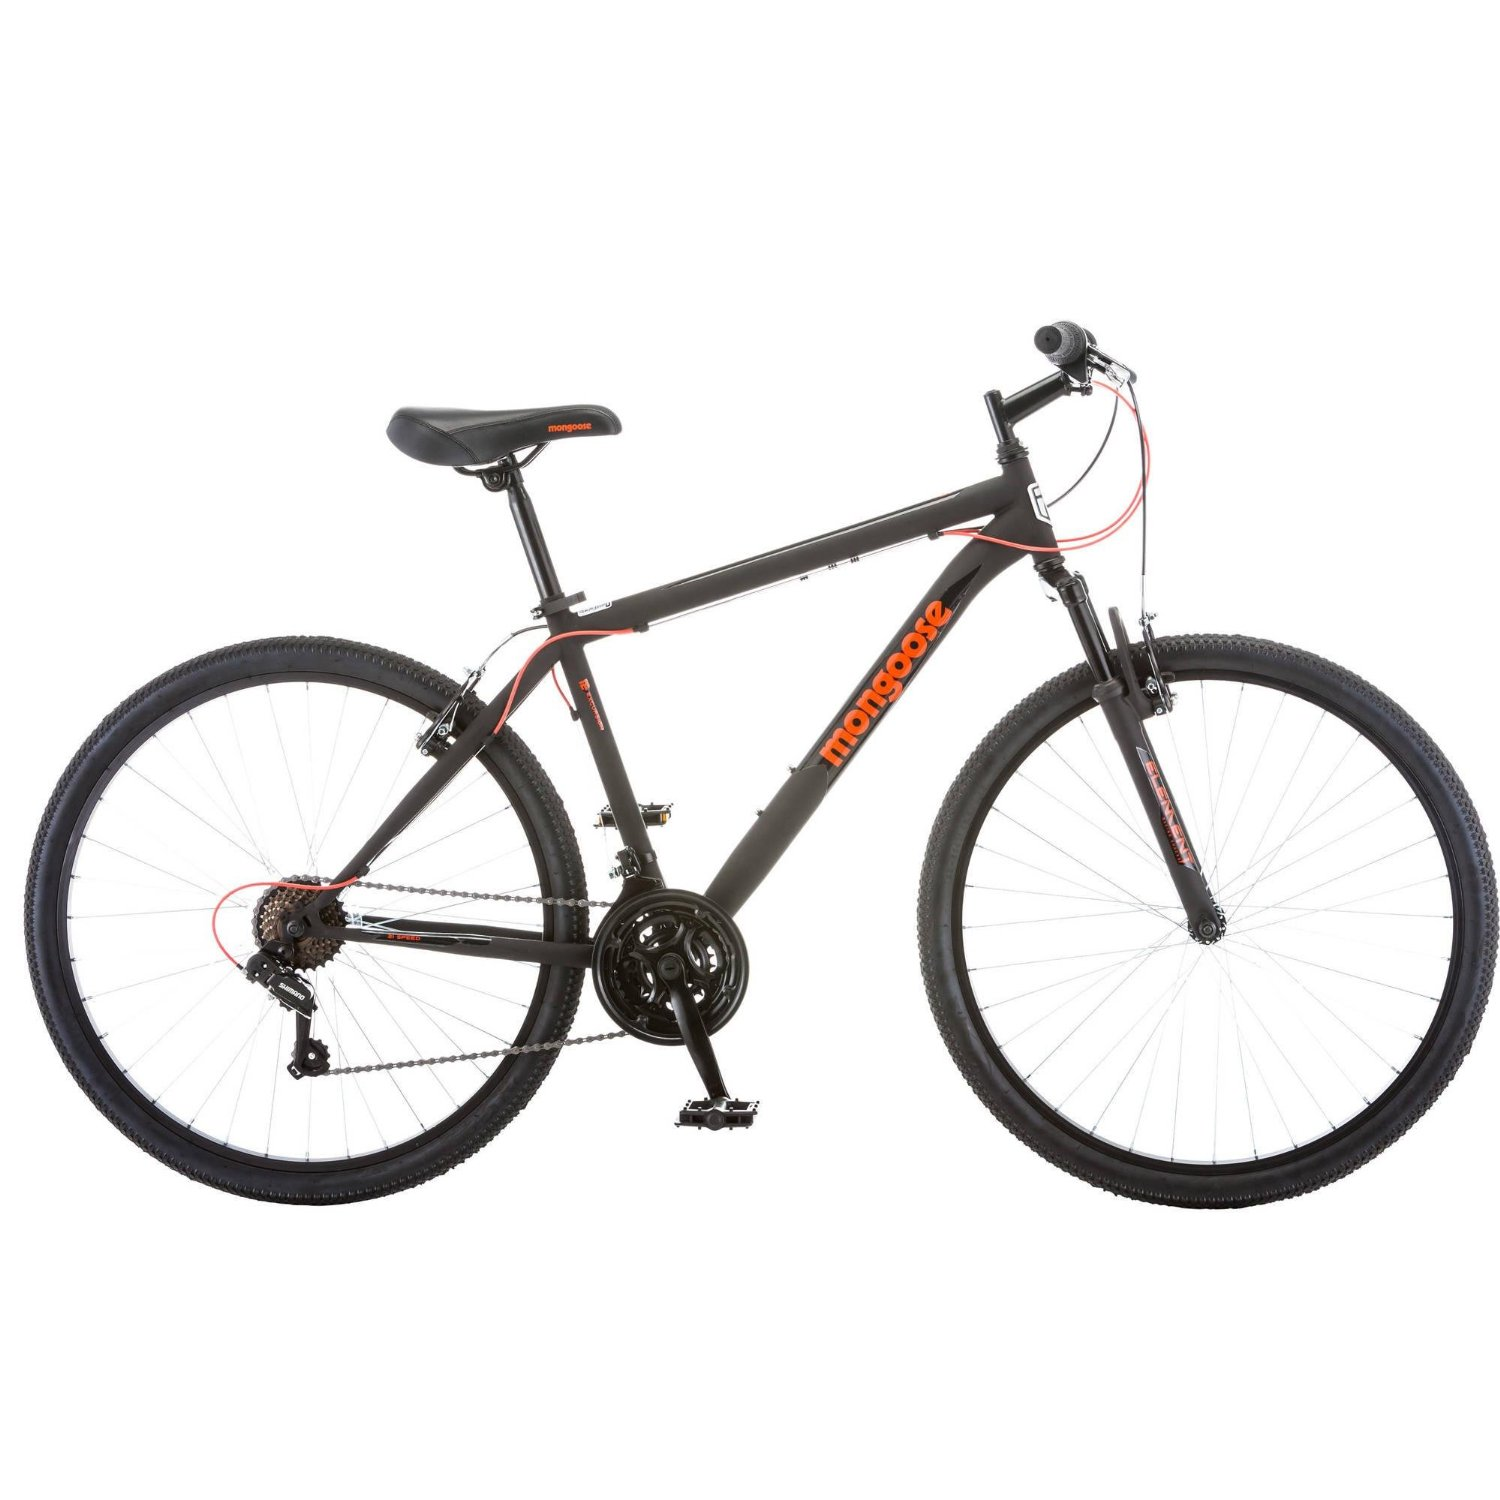 Mongoose 21 Speed Steel Frame Front Suspension Mountain Bike for Men, 27.5 Inch